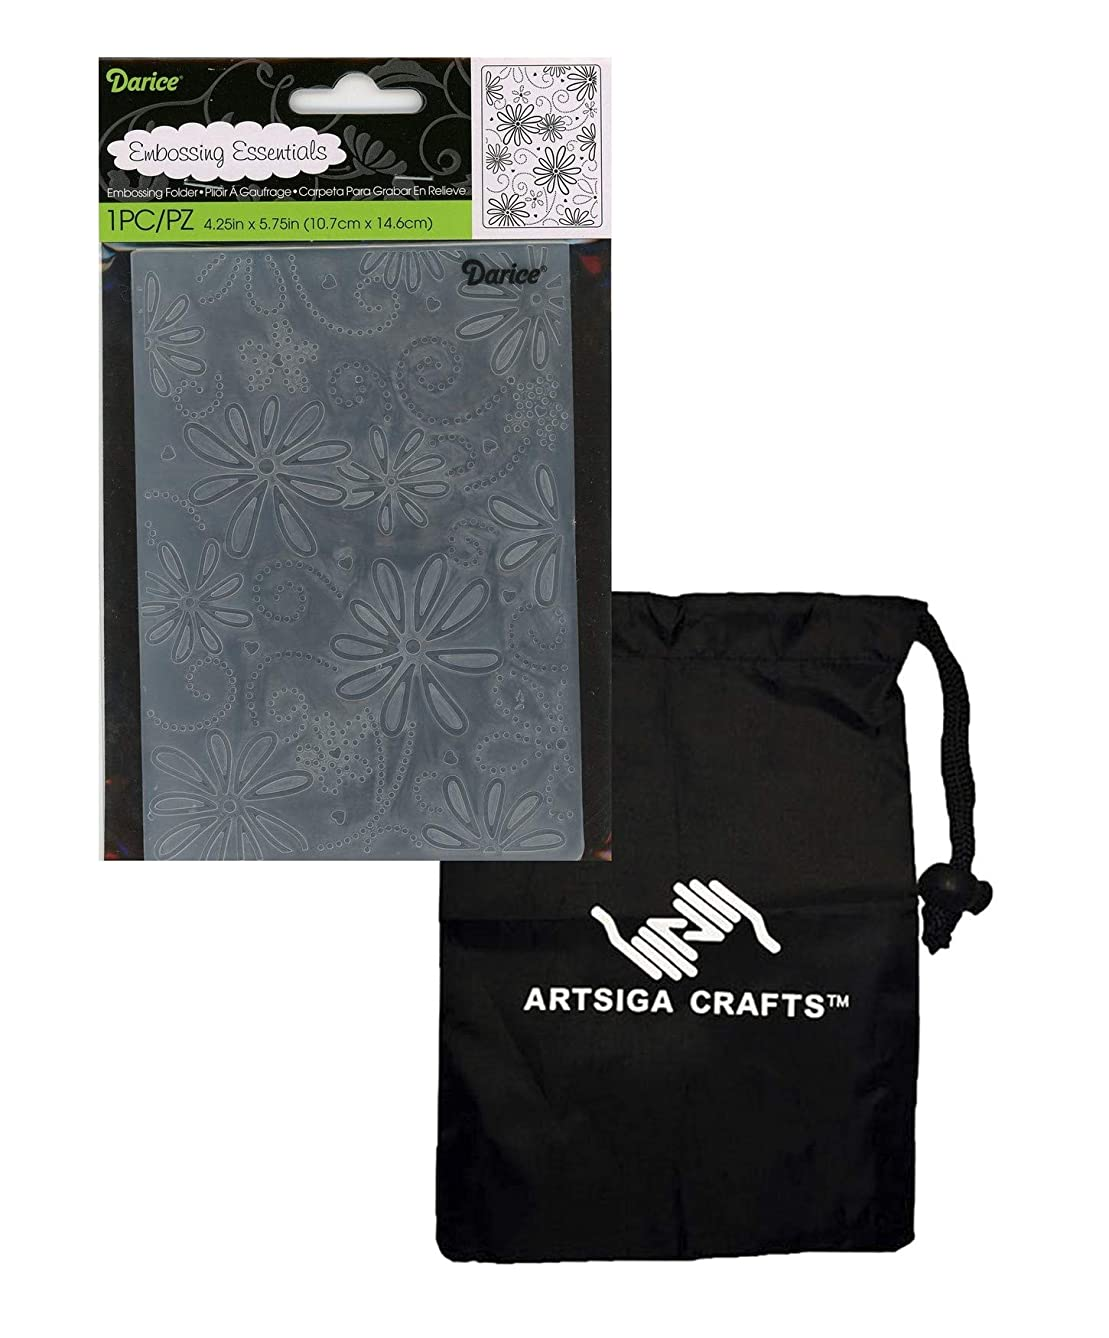 Darice Embossing Folders for Card Making Large Petal Background 4.25 x 5.75 1215-70 Bundle with 1 Artsiga Crafts Small Bag